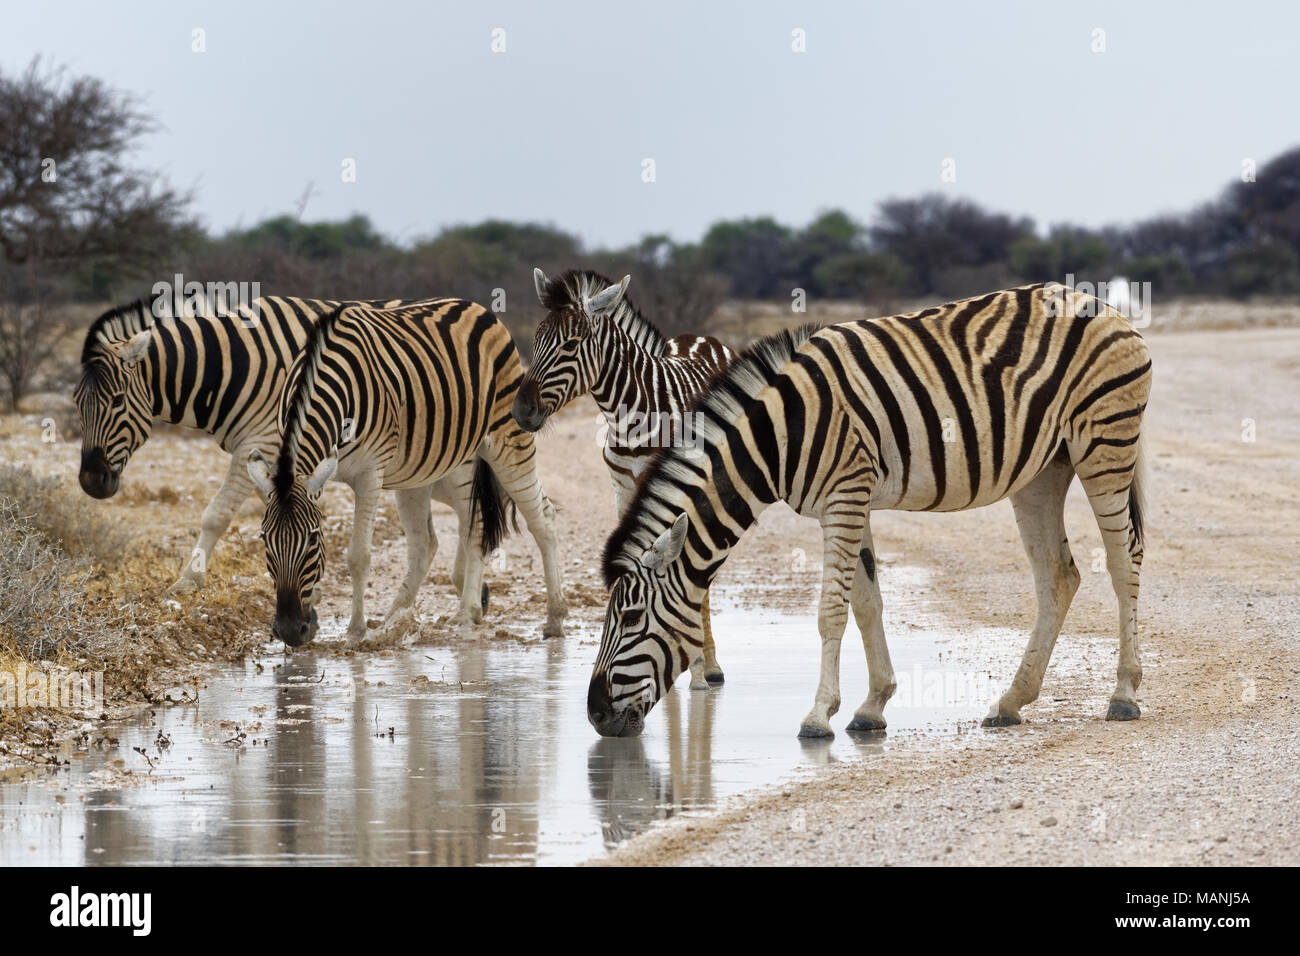 Burchell's zebras (Equus quagga burchellii), adults and foal on a dirt road, drinking rainwater from a puddle, Etosha National Park, Namibia, Africa - Stock Image